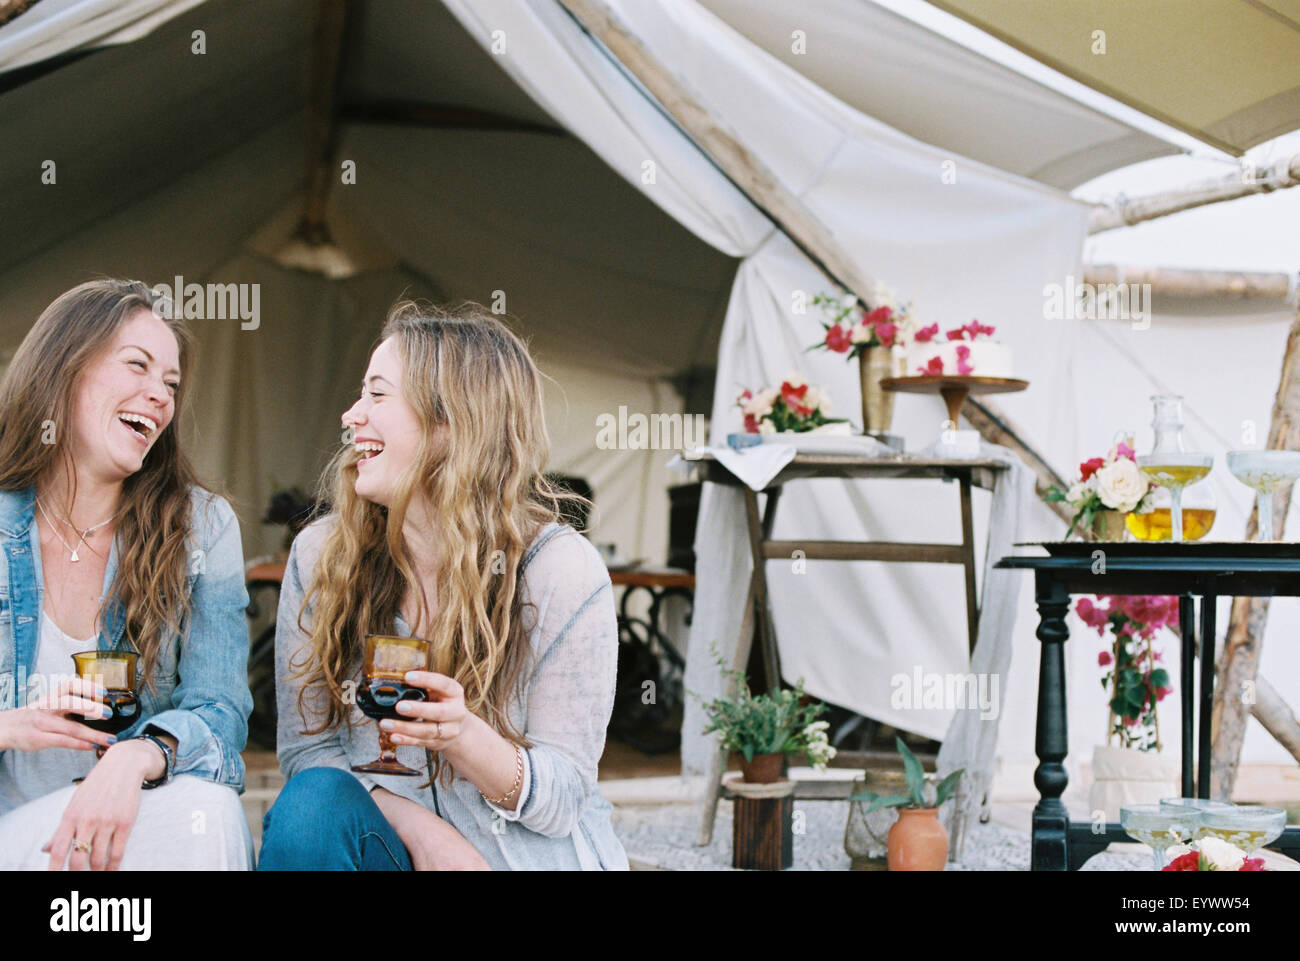 Two smiling women sitting outside a tent in a desert, enjoying a glass of wine. - Stock Image